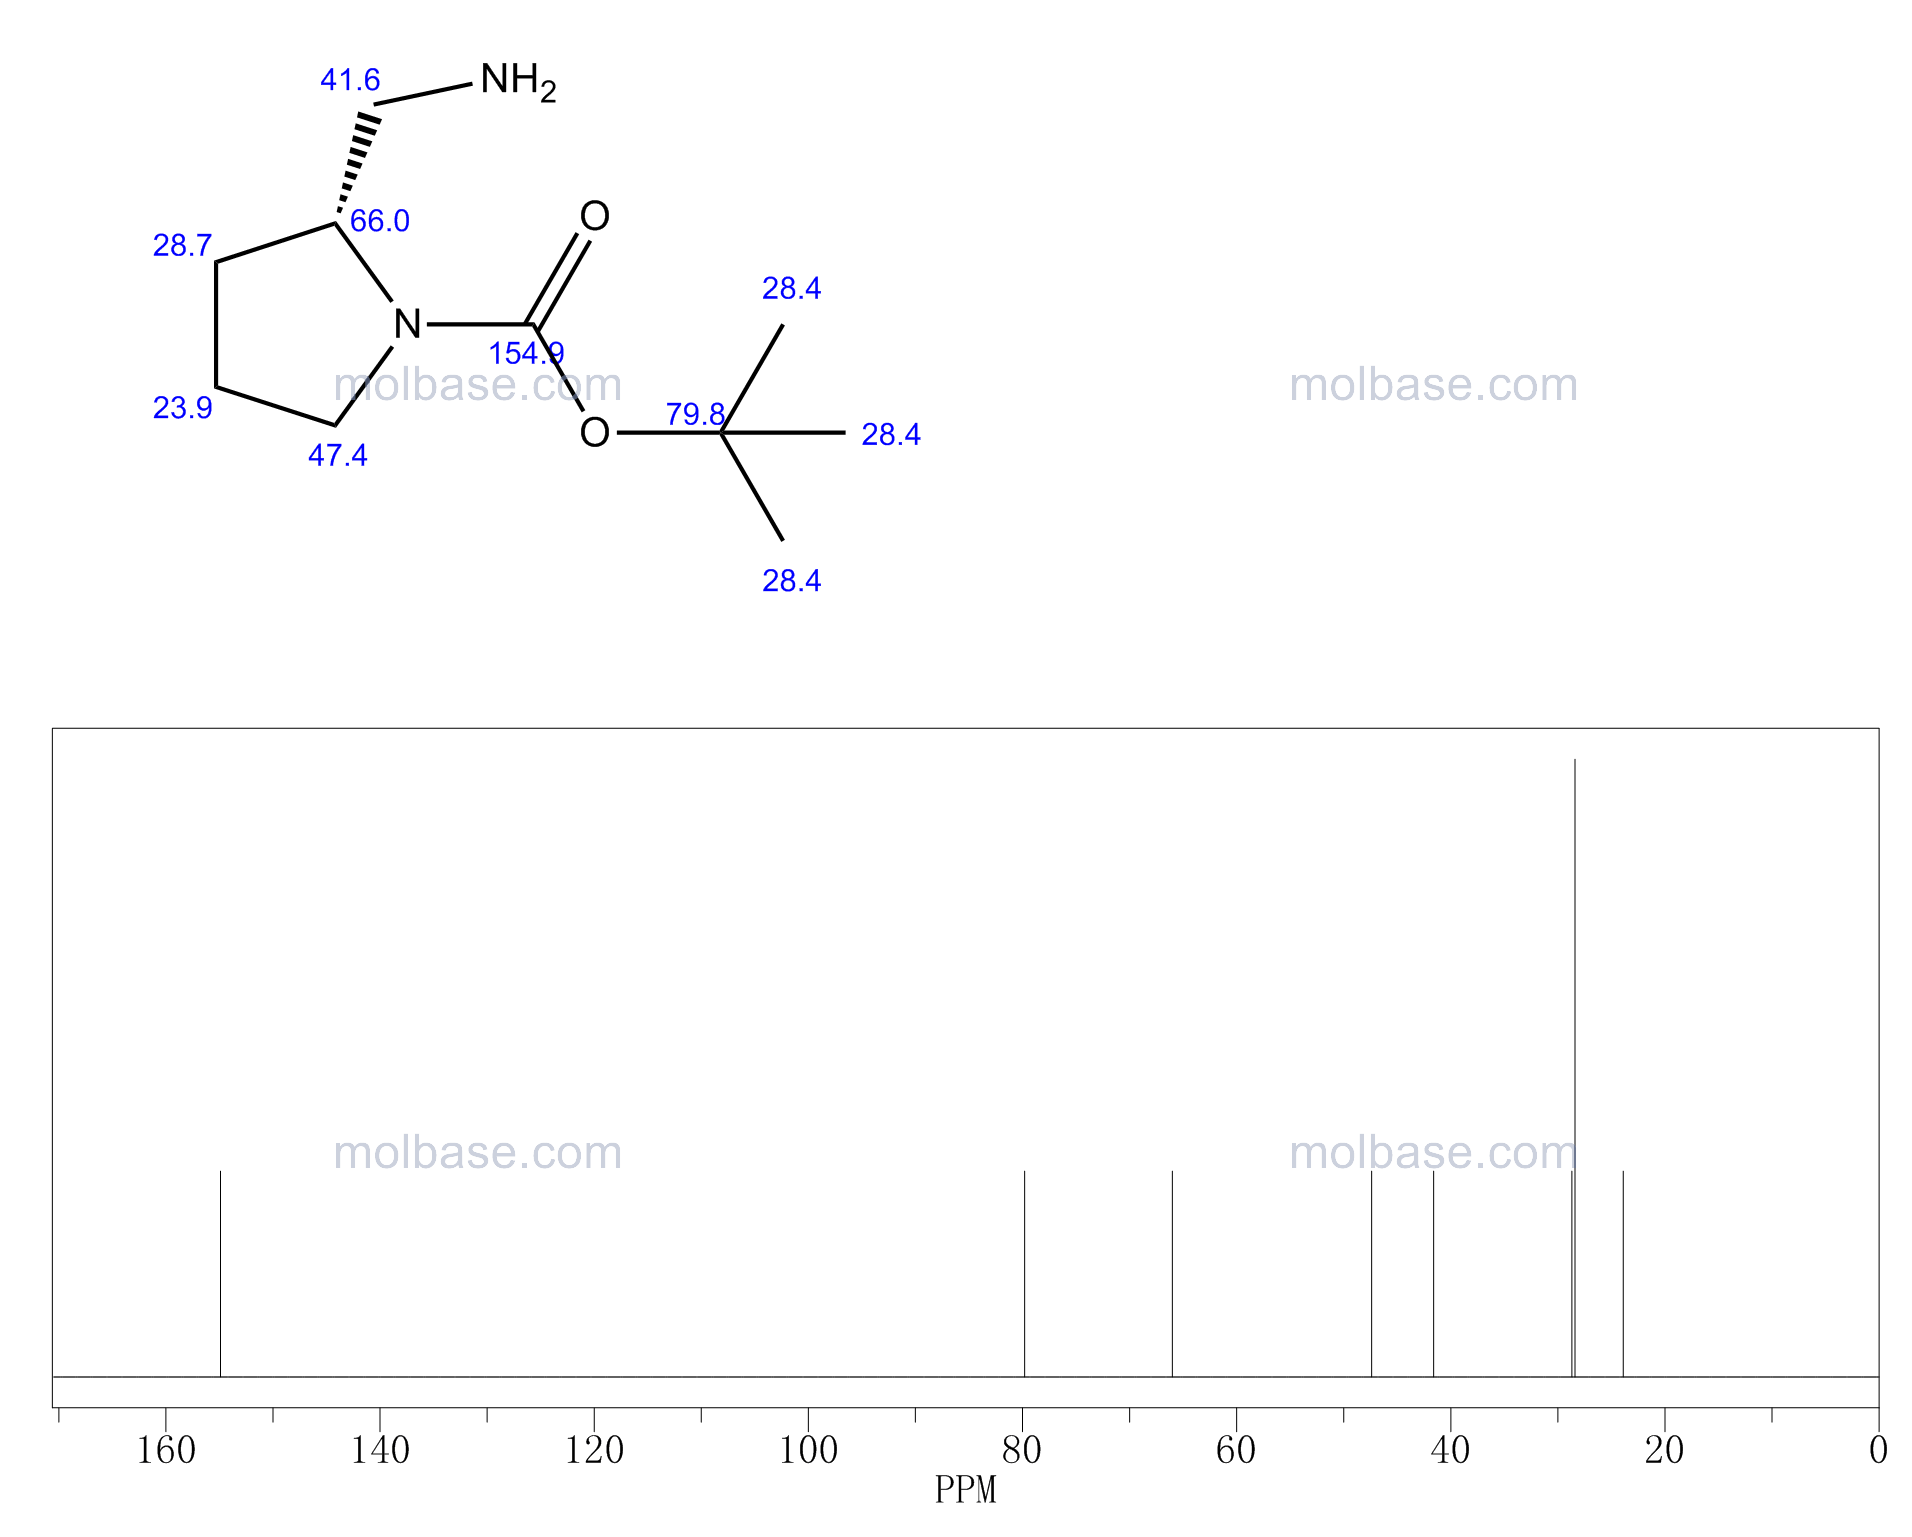 (S)-2-(Aminomethyl)-1-Boc-pyrrolidine NMR spectra analysis, Chemical CAS NO. 119020-01-8 NMR spectral analysis, (S)-2-(Aminomethyl)-1-Boc-pyrrolidine C-NMR spectrum